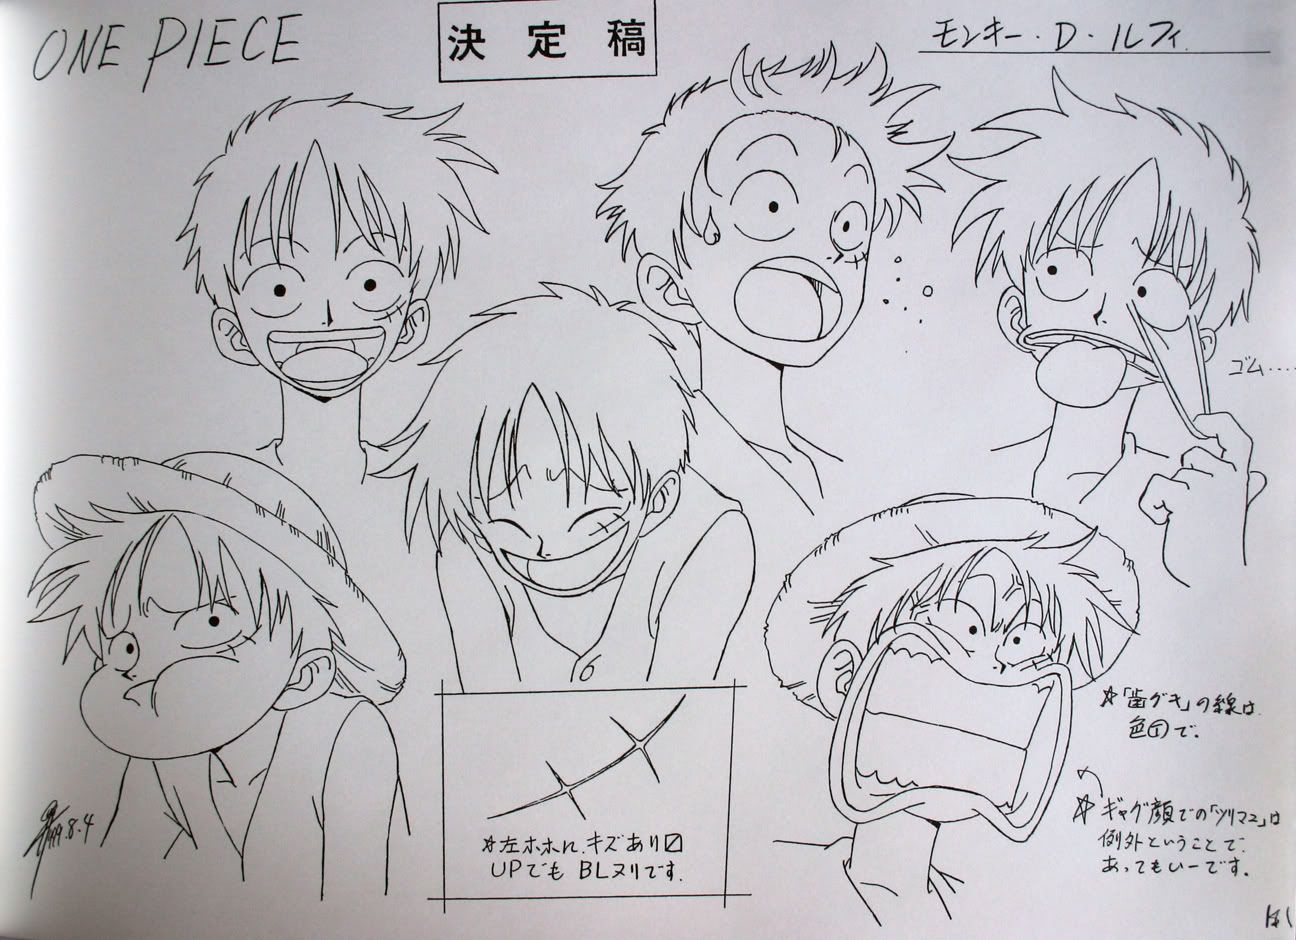 Kitakokoro S Image One Piece Drawing Character Design Character Design References